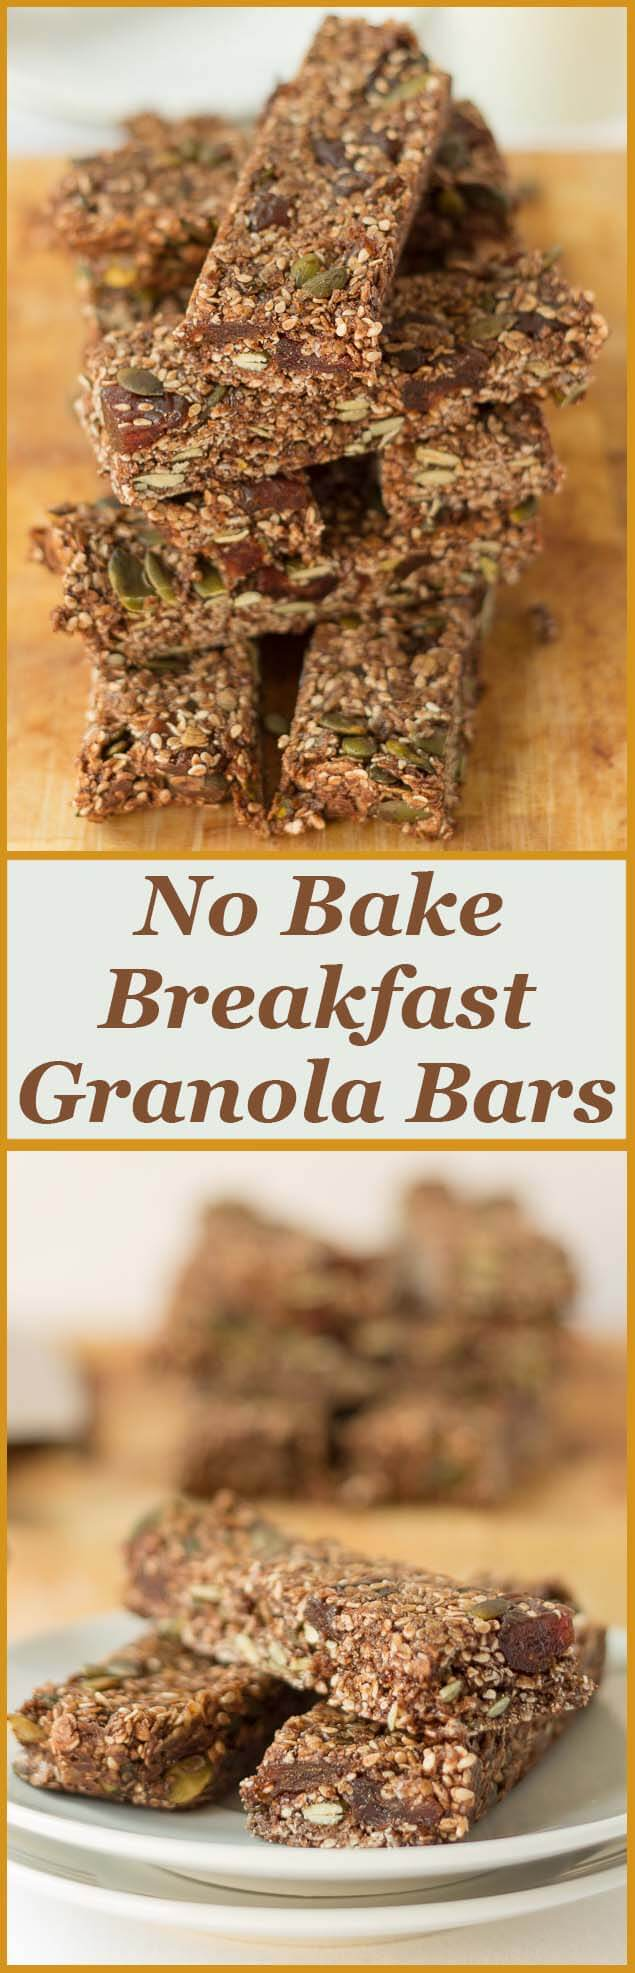 No bake breakfast granola bars, low calorie, nut free, easy to make, full of healthy natural goodness with a fantastic light chocolate taste as well.